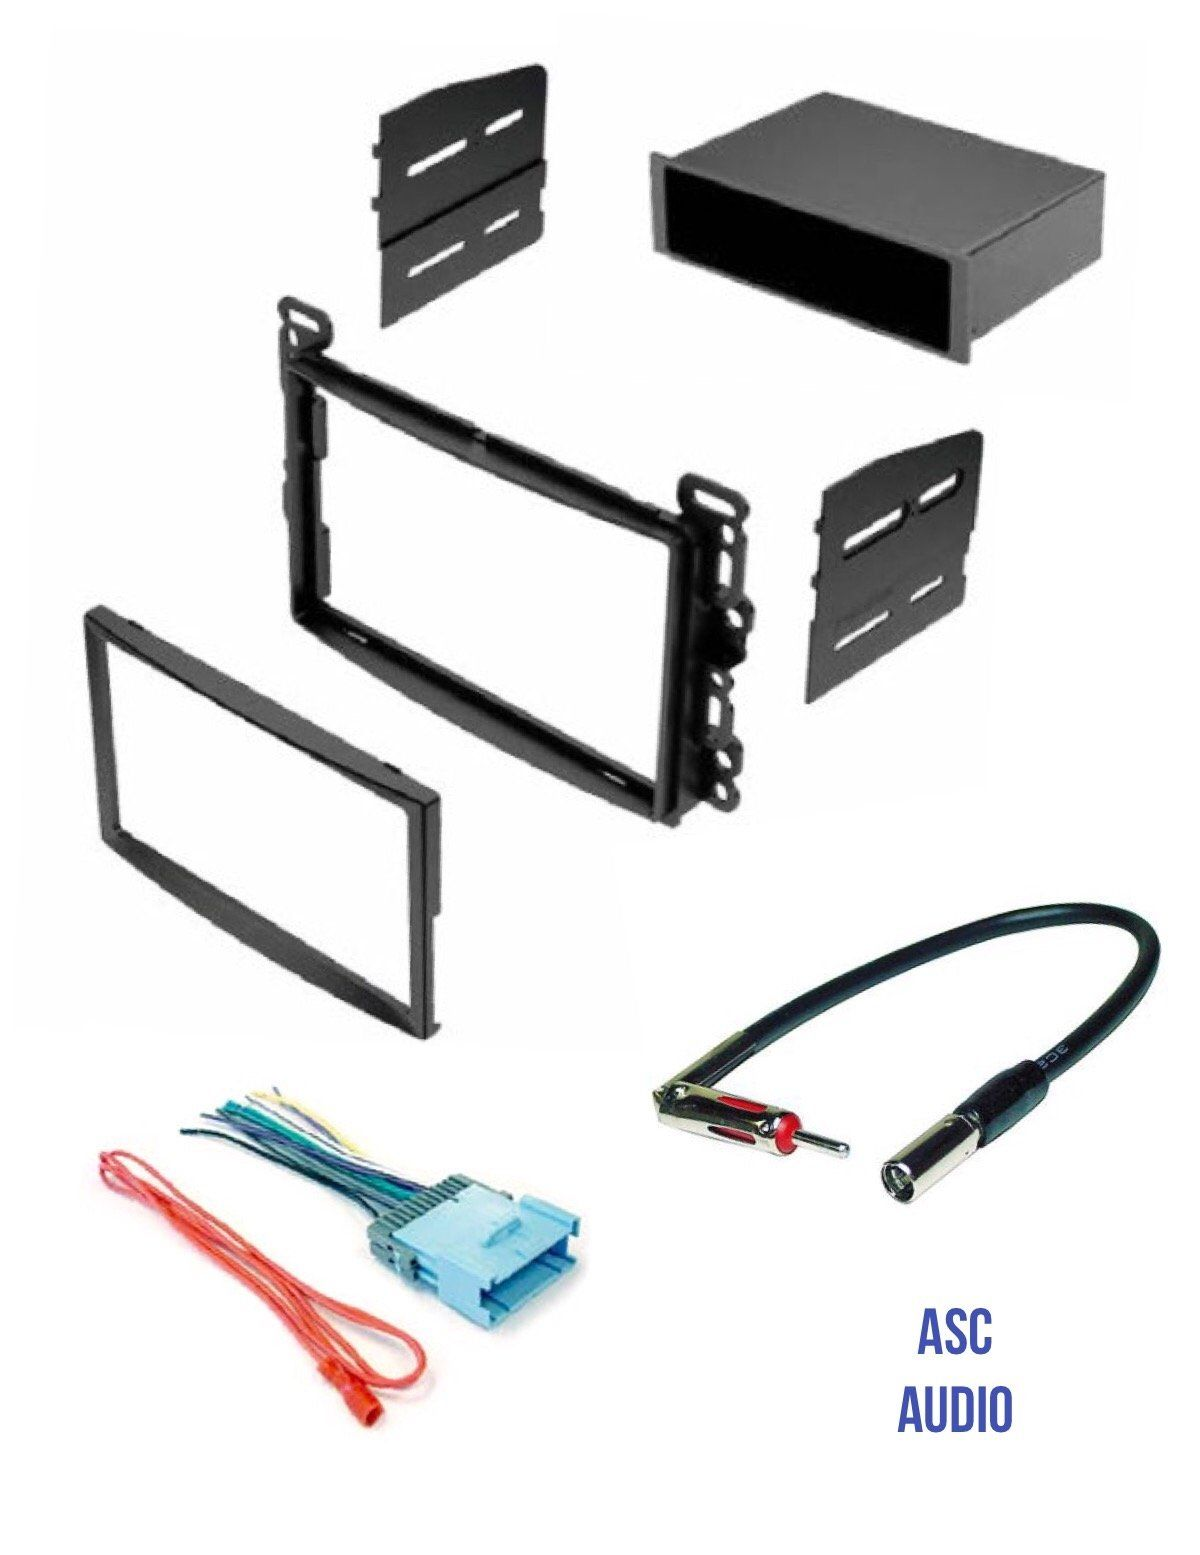 Asc Stereo Dash Kit  Wire Harness  And Antenna Adapter For Some Chevrolet  2005